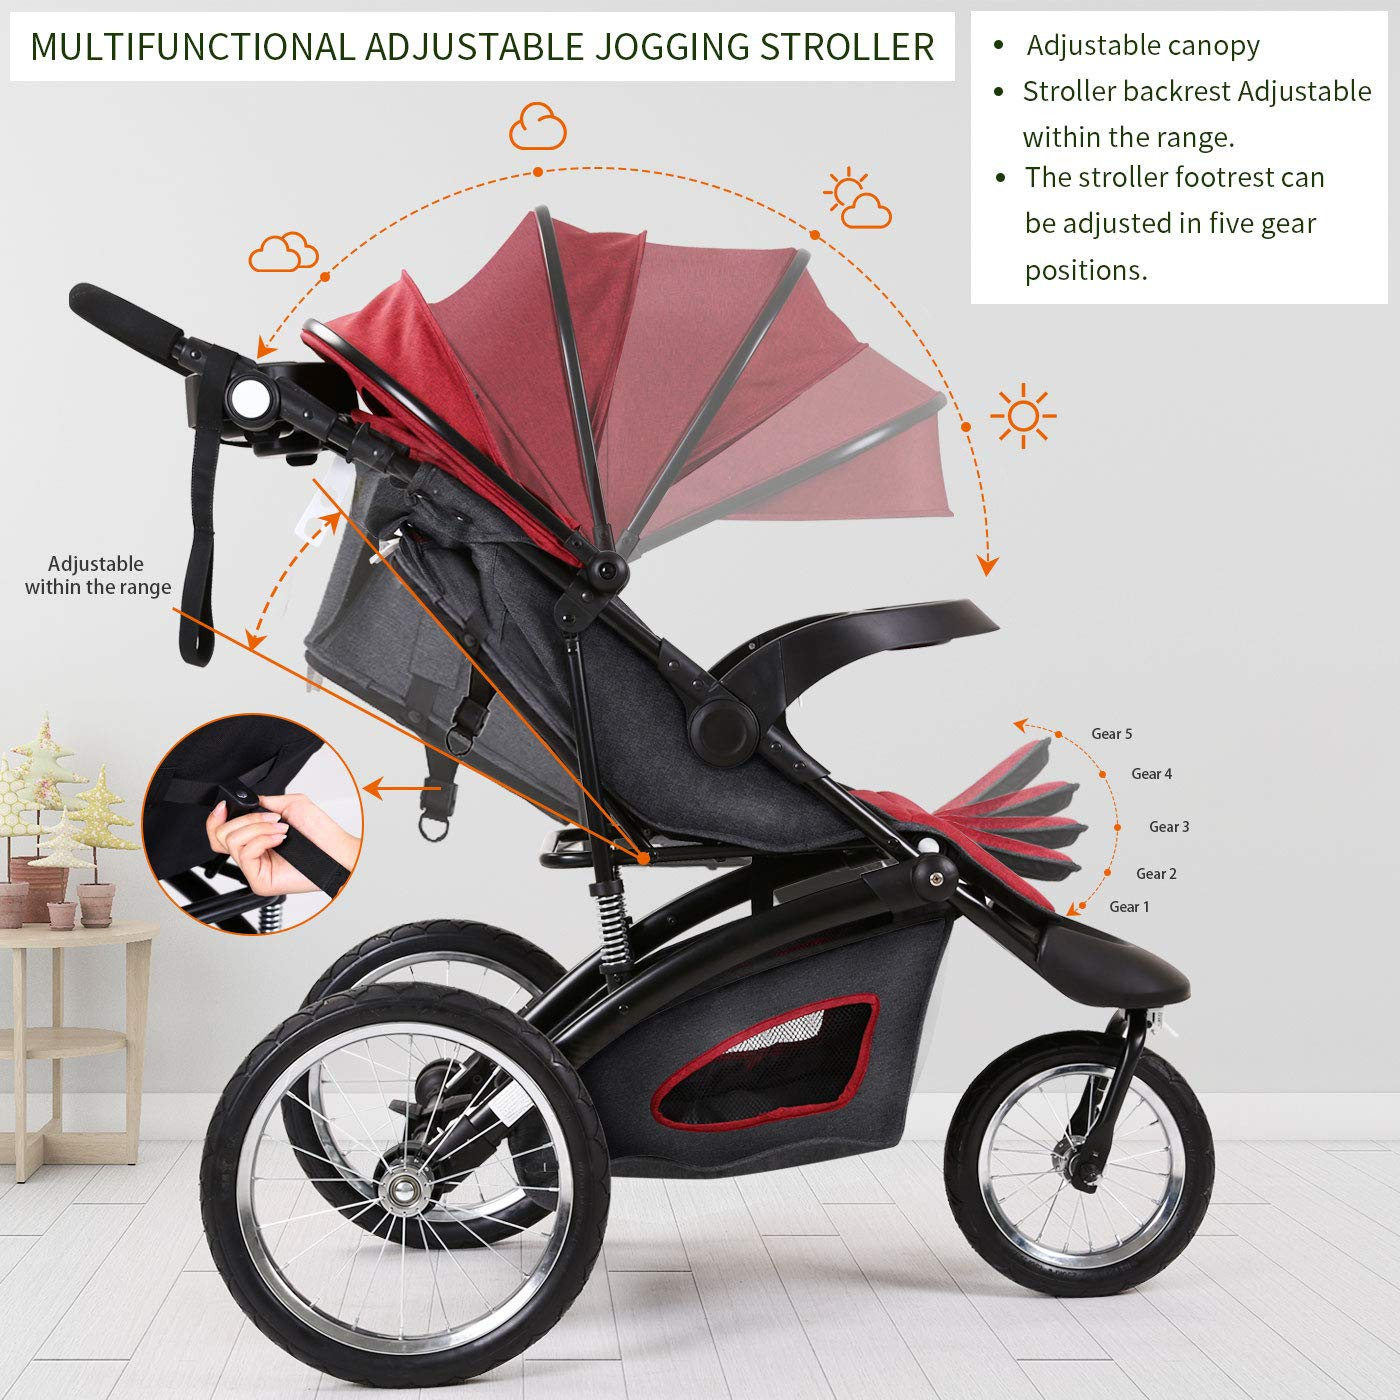 Jogging Stroller Fold City Baby Jogger Travel Citi Jog Strollers Single Toddler Baby Pram Jogging Compact Urban Ultralight Joggers Beby Carriage Pushchair Stroller Travel System by Cynebaby / HAIXIAO (Image #2)